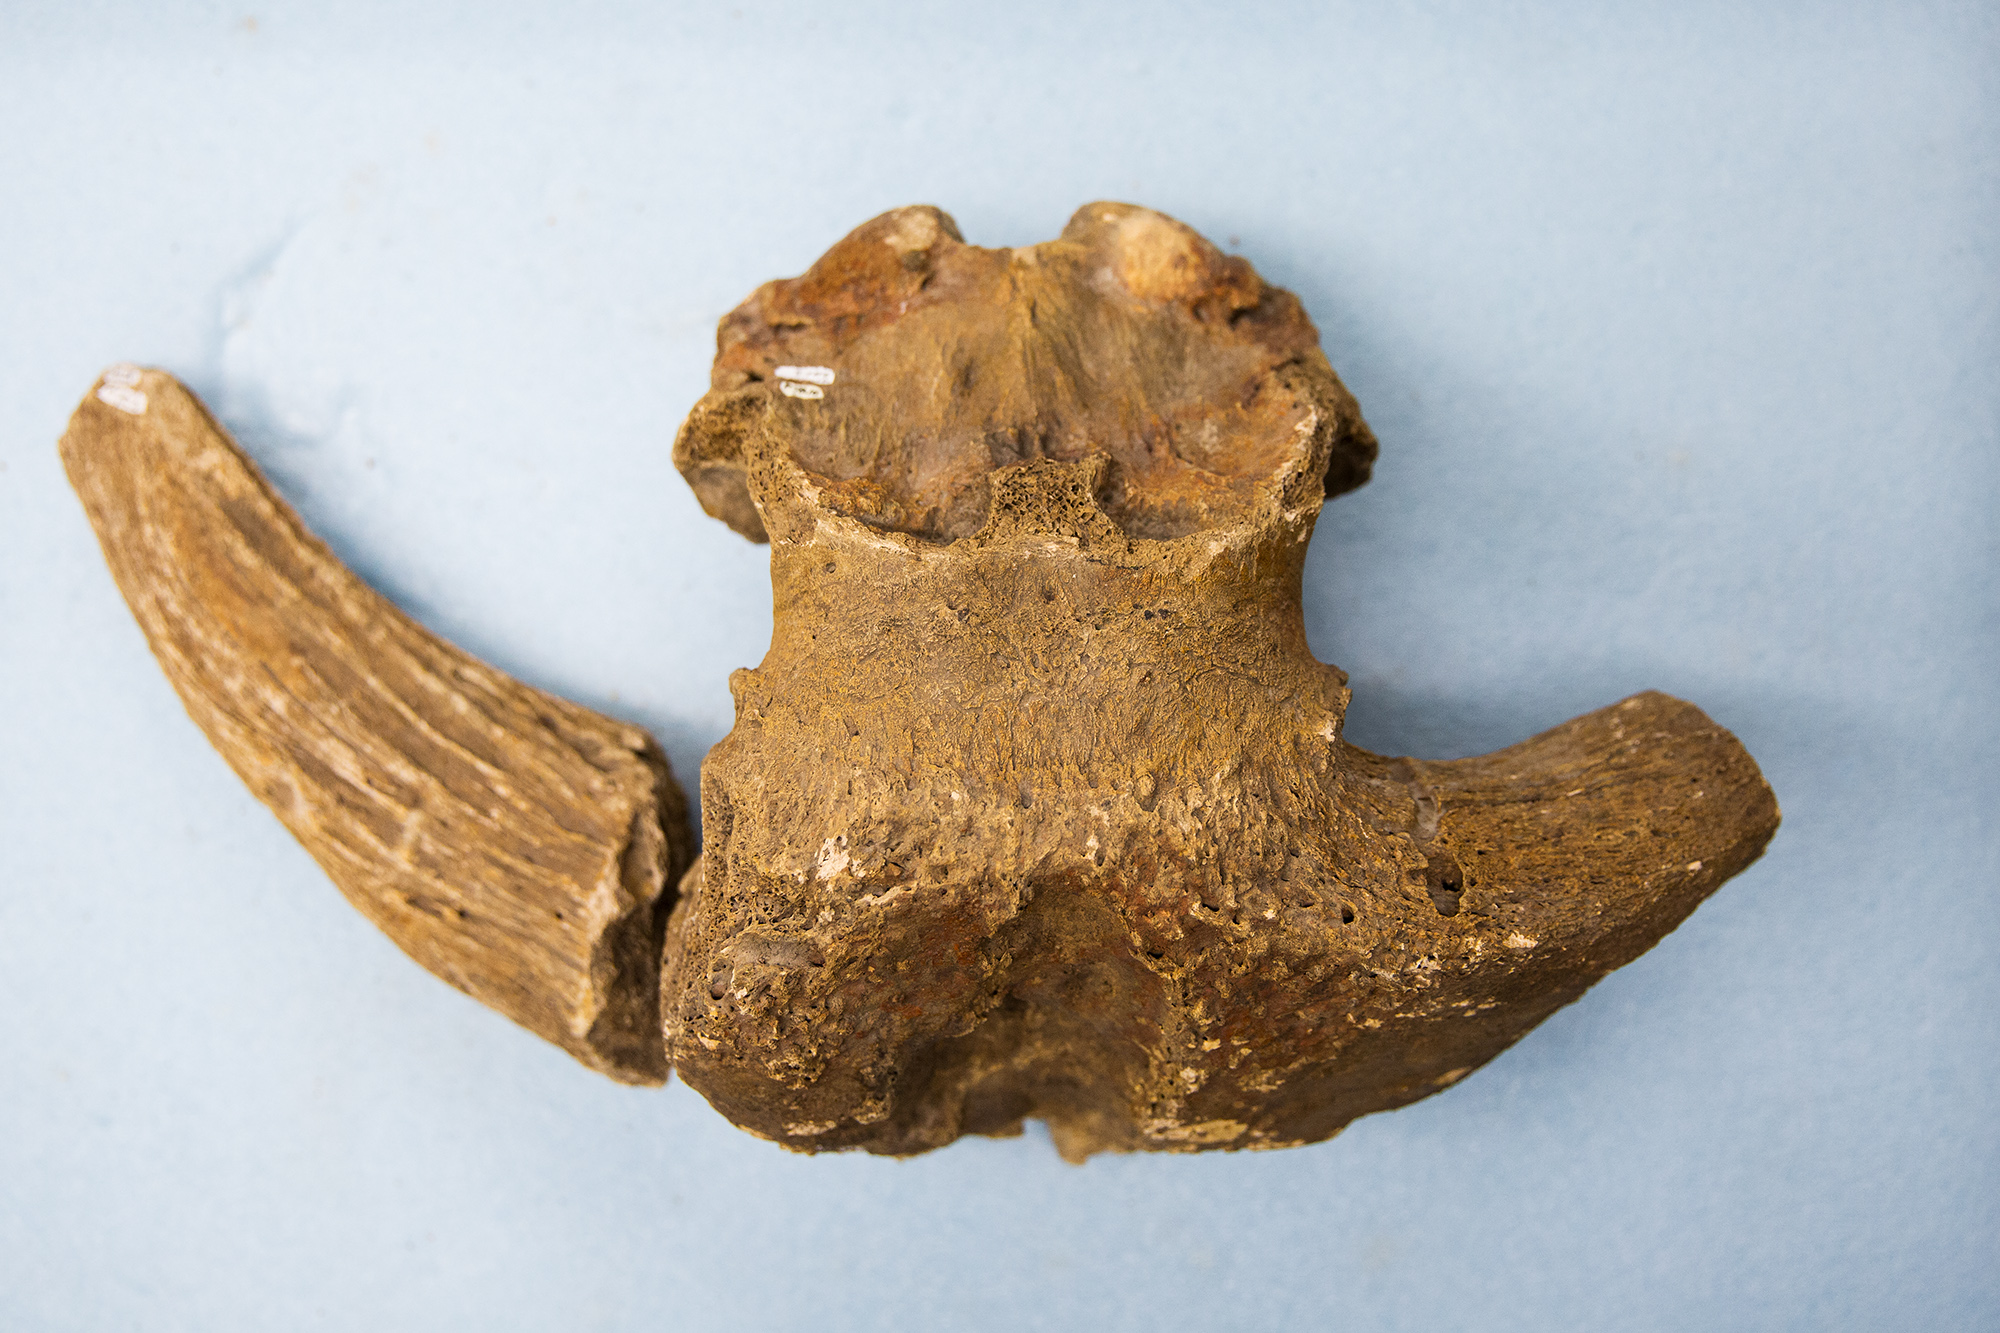 photo of musk ox skull, different angle from first image.